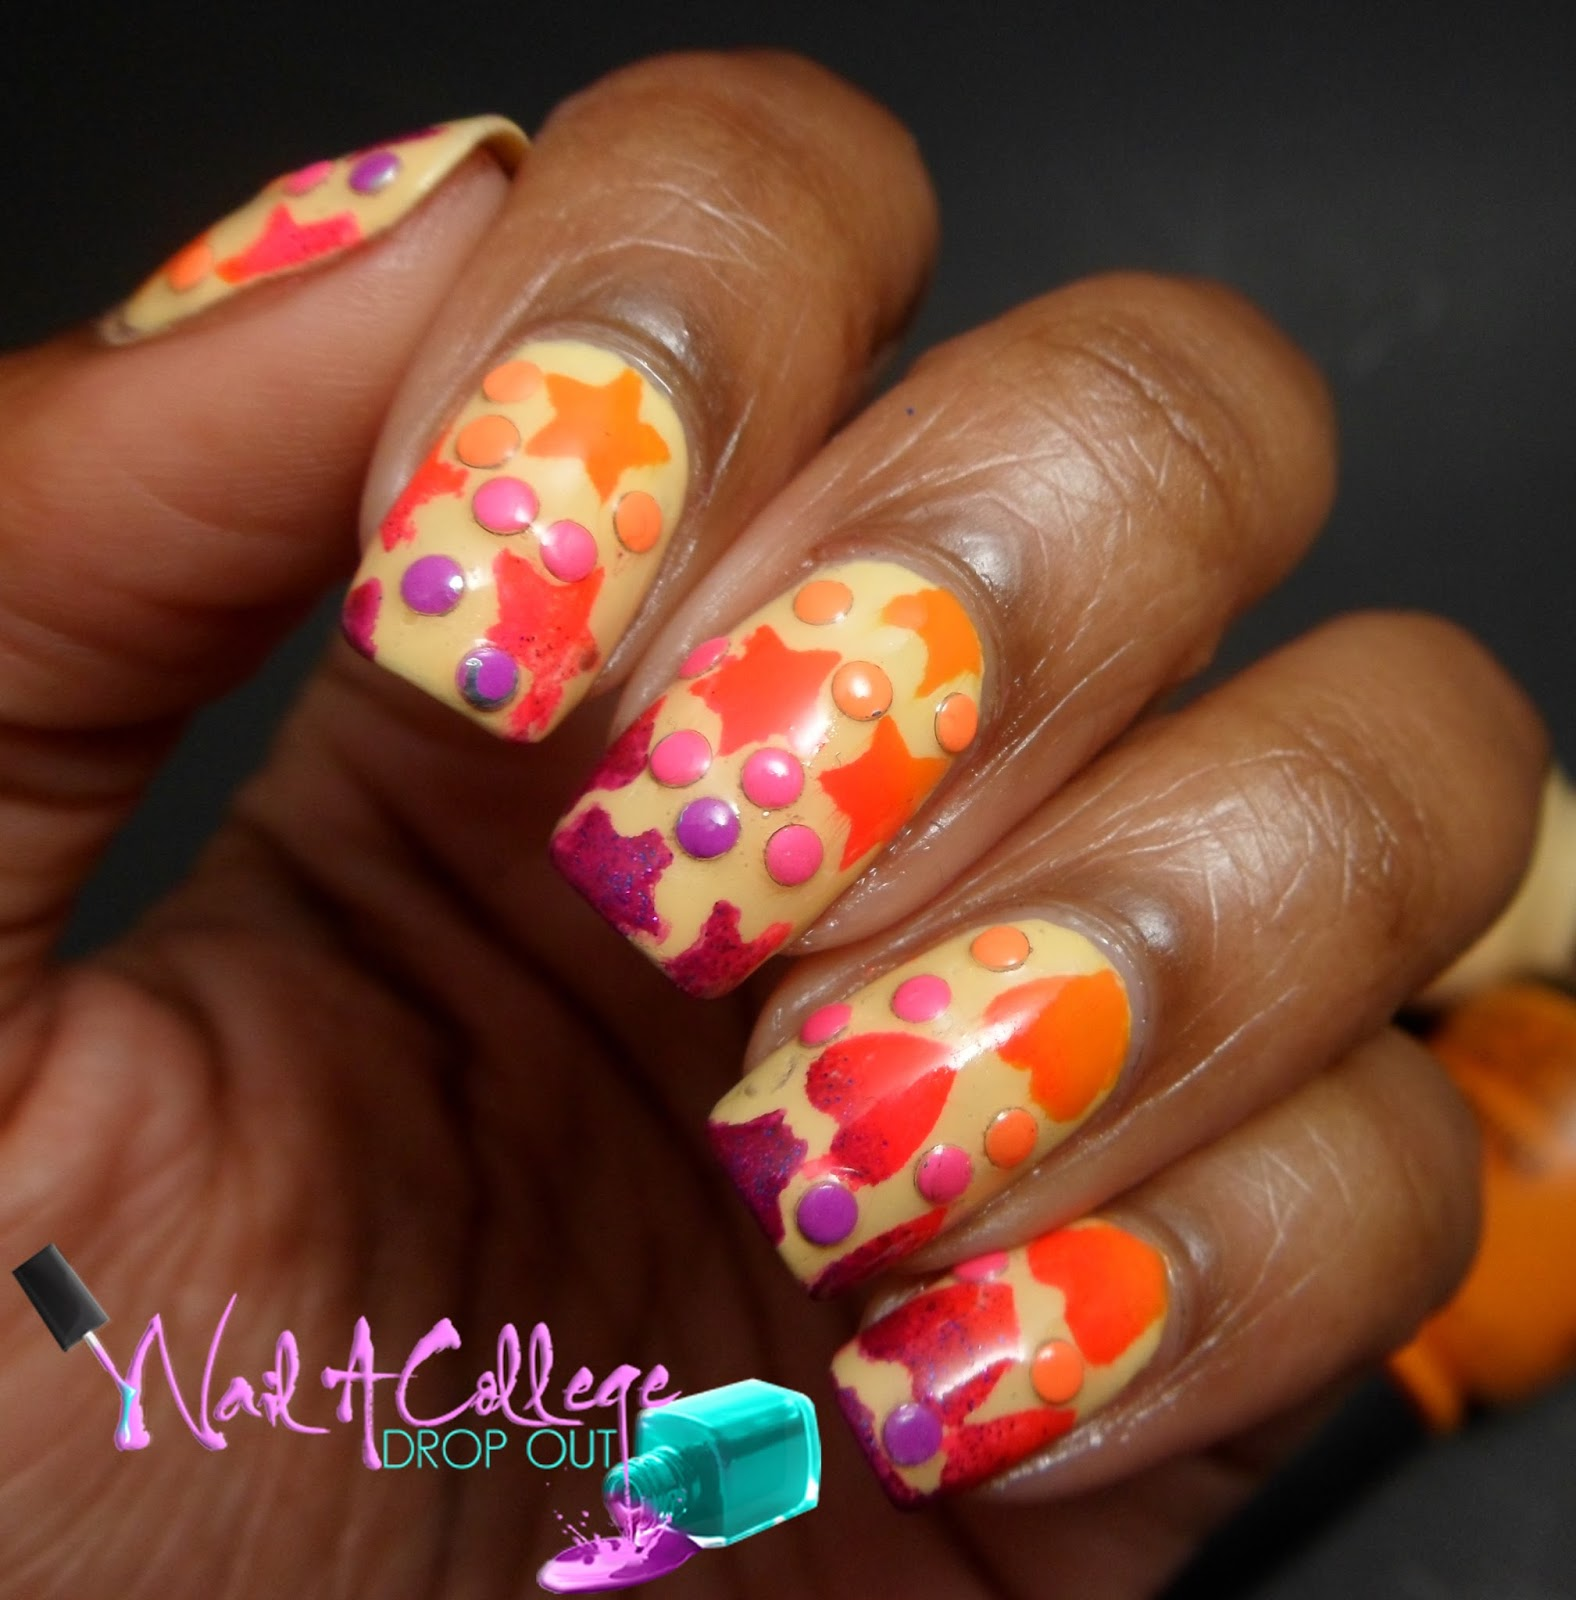 Nail A College Drop Out: Nail Art Society: I Love Studs